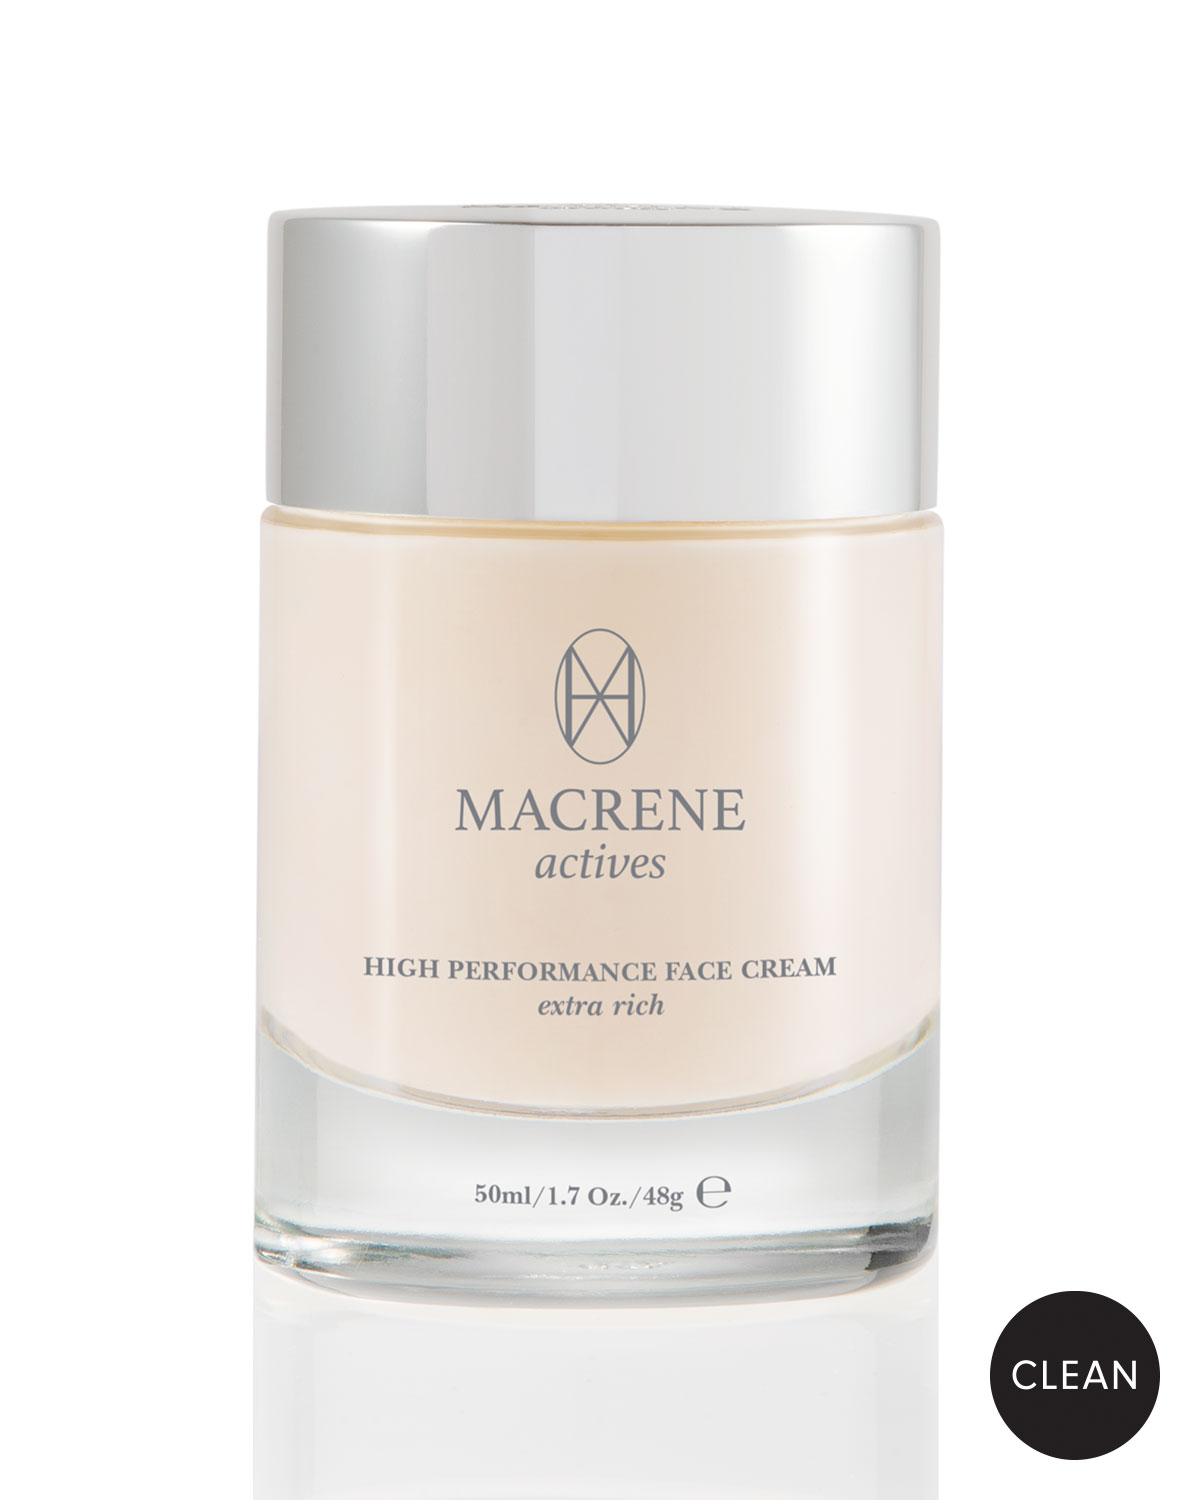 Macrene Actives High Performance Face Cream - Extra Rich 1.7 Oz.